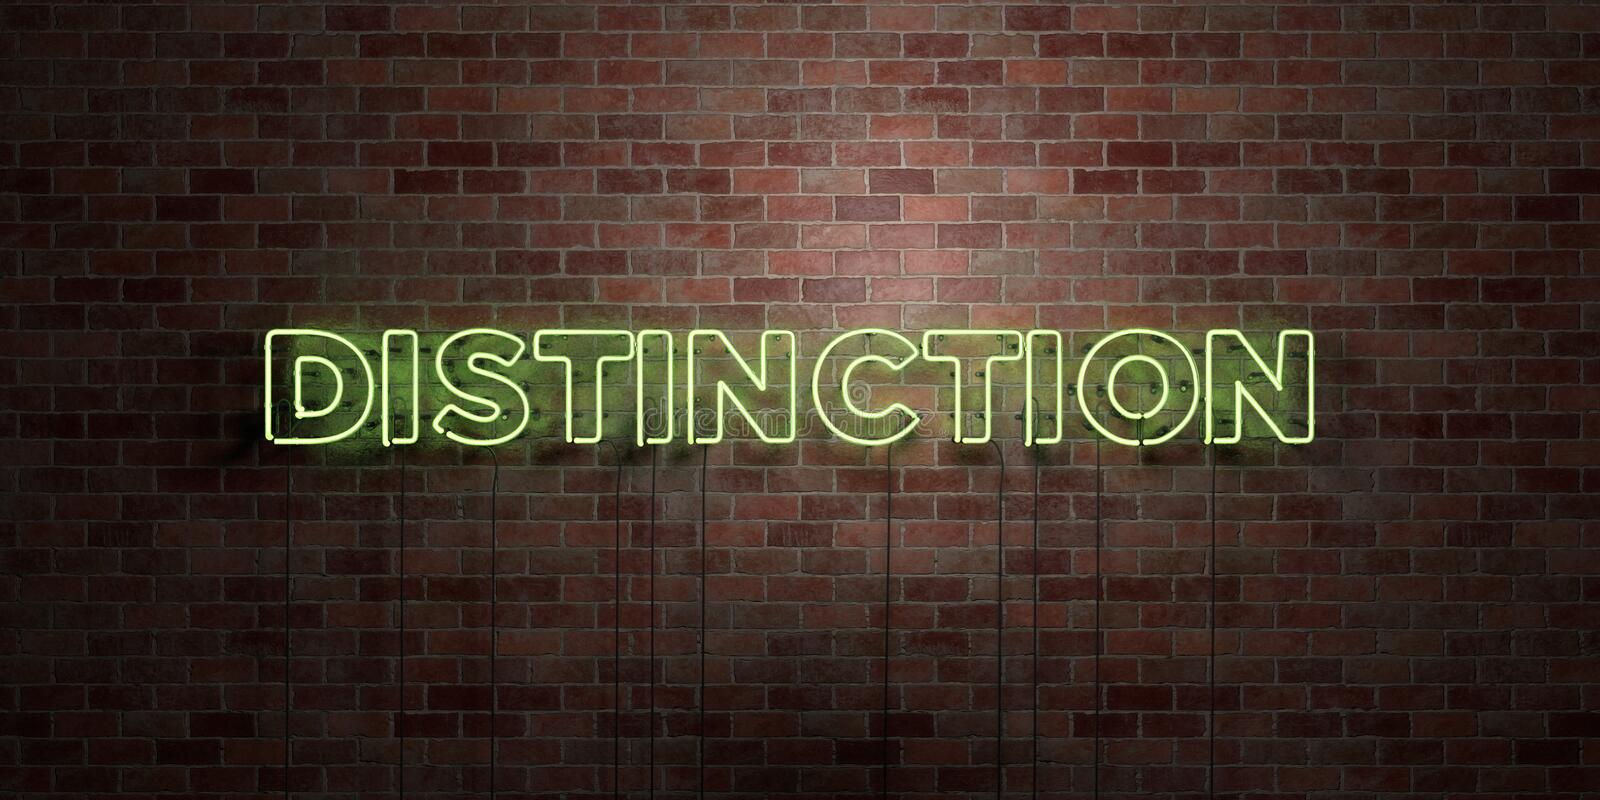 DISTINCTION - fluorescent Neon tube Sign on brickwork - Front view - 3D rendered royalty free stock picture. Can be used for online banner ads and direct royalty free illustration